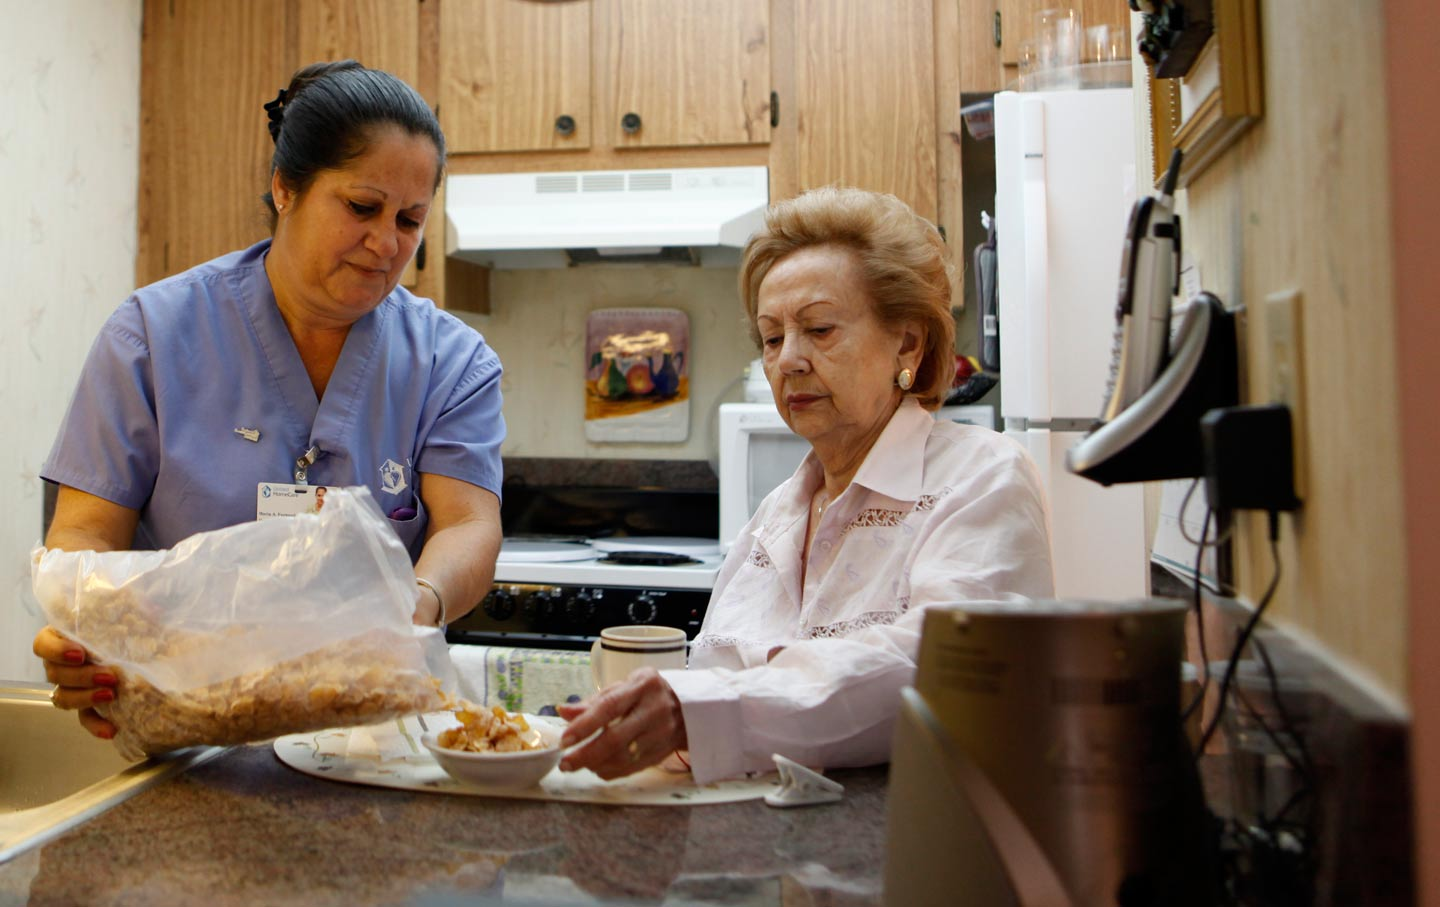 Home Health Aide Practice Test – 50 Questions